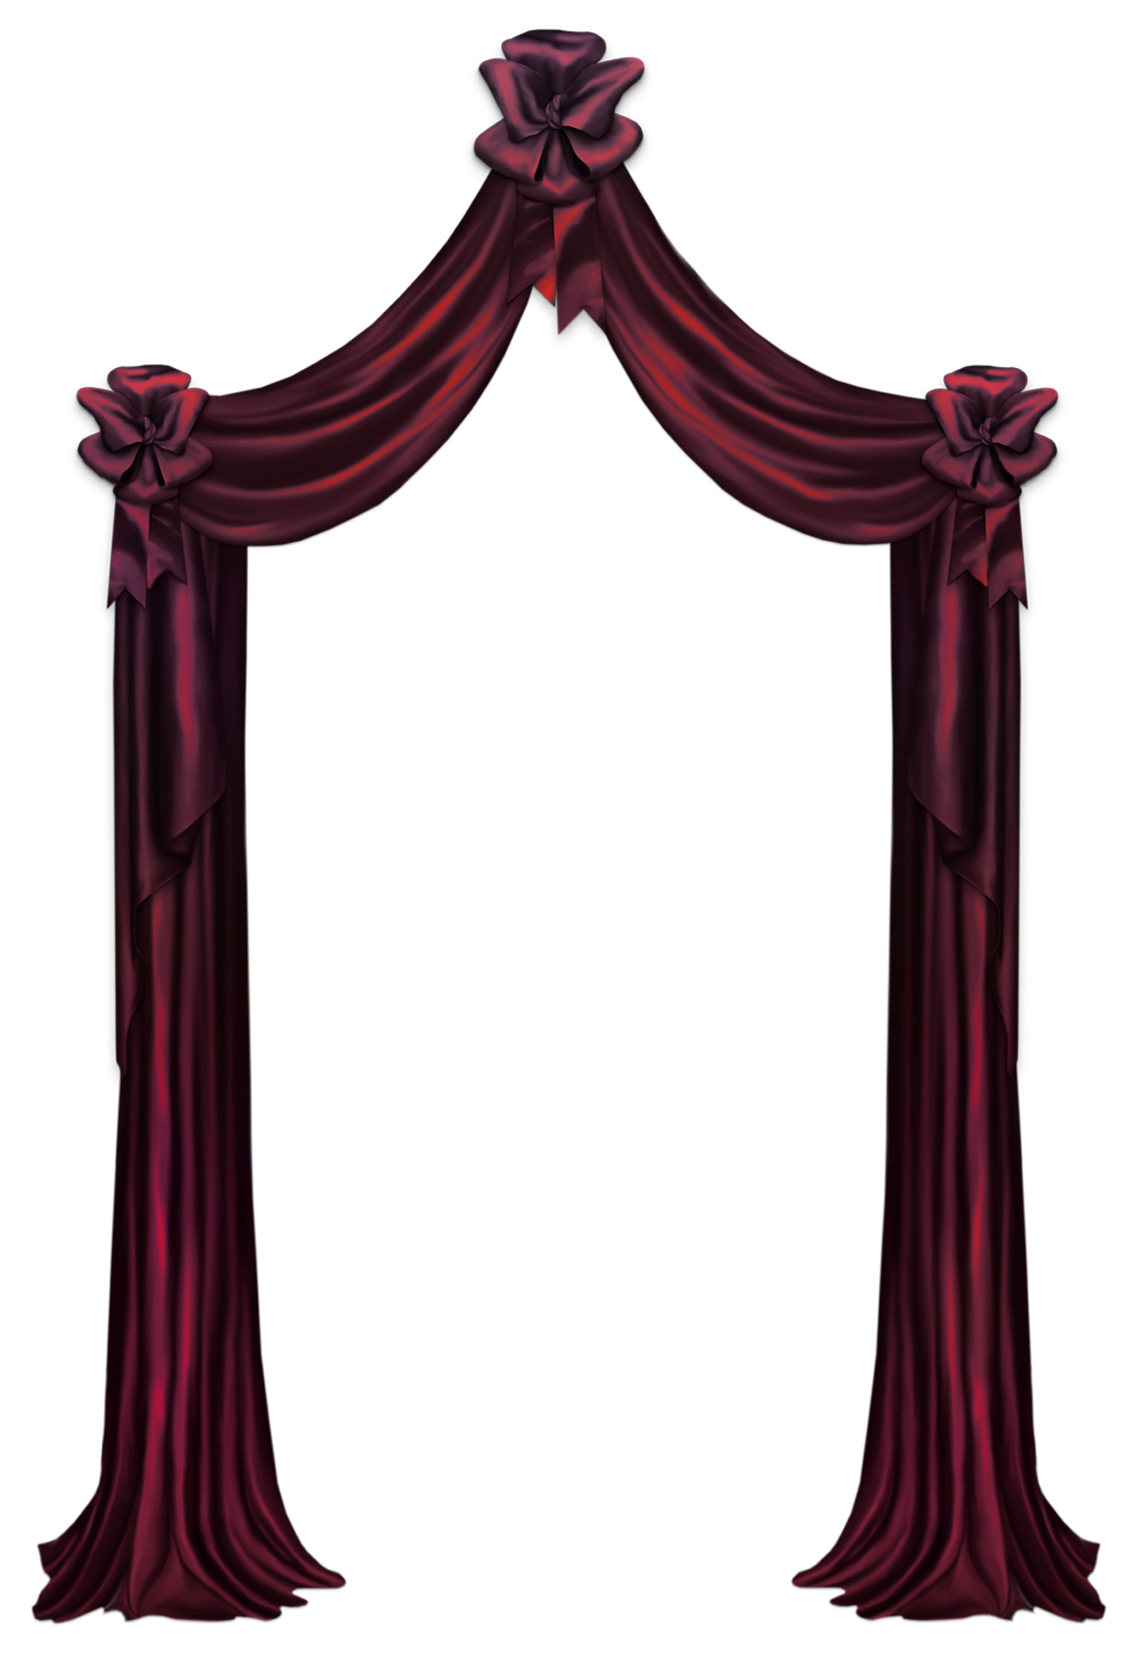 Curtain clipart elegant. Window with curtains stunning